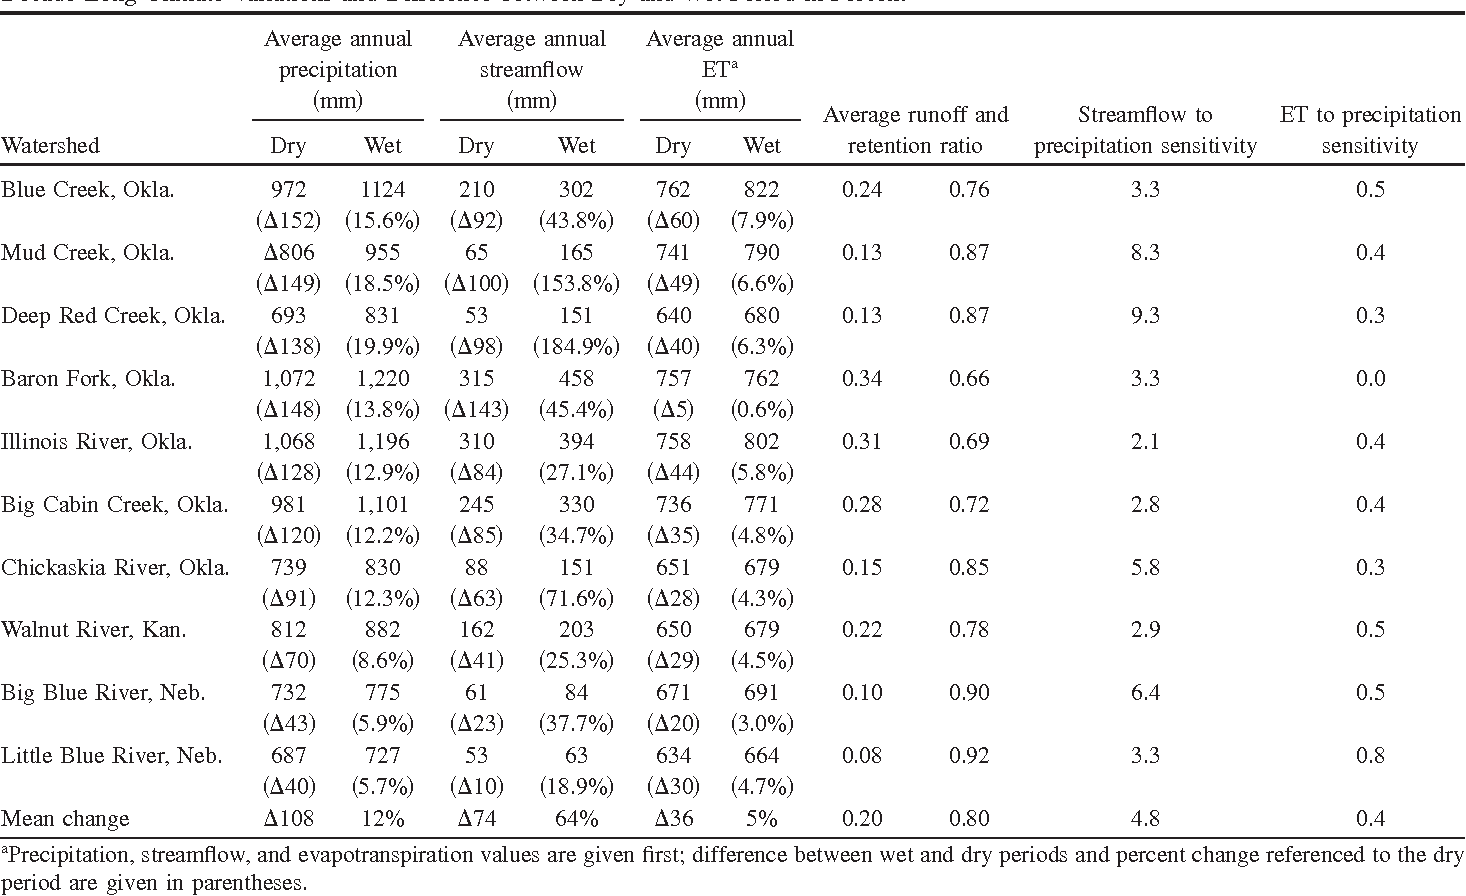 Table 2. Average Annual Precipitation, Streamflow, and Evapotranspiration for Dry ~1961–1980! and Wet Period ~1981–2001! as a Result of Decade-Long Climate Variations and Difference between Dry and Wet Period in Percent